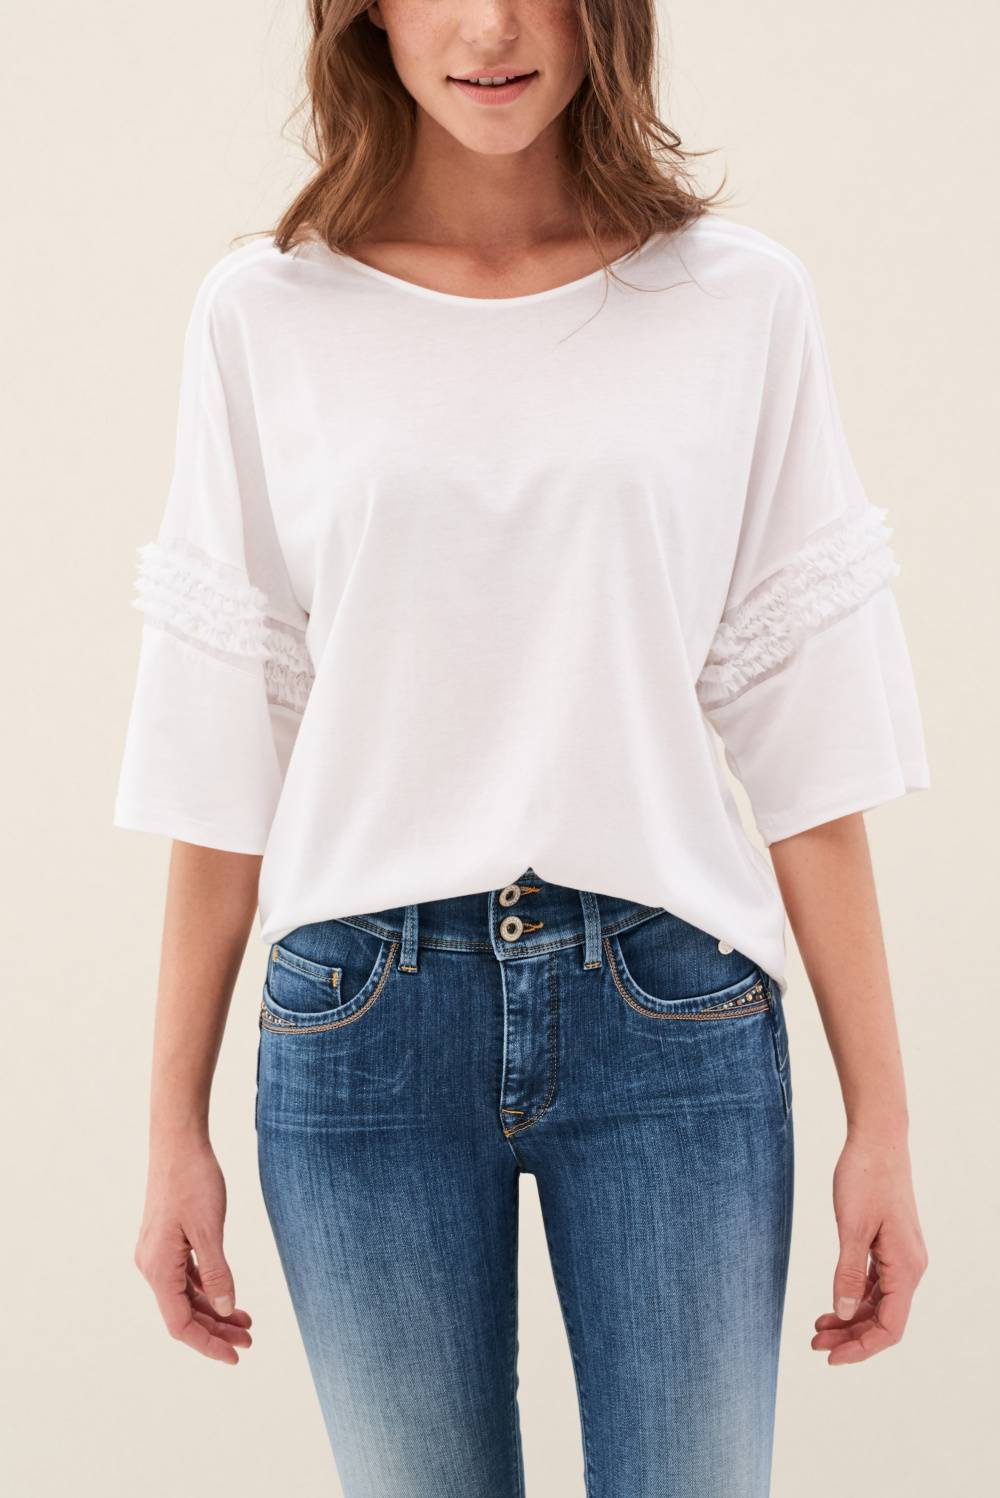 T-shirt with frills on the sleeves - Salsa